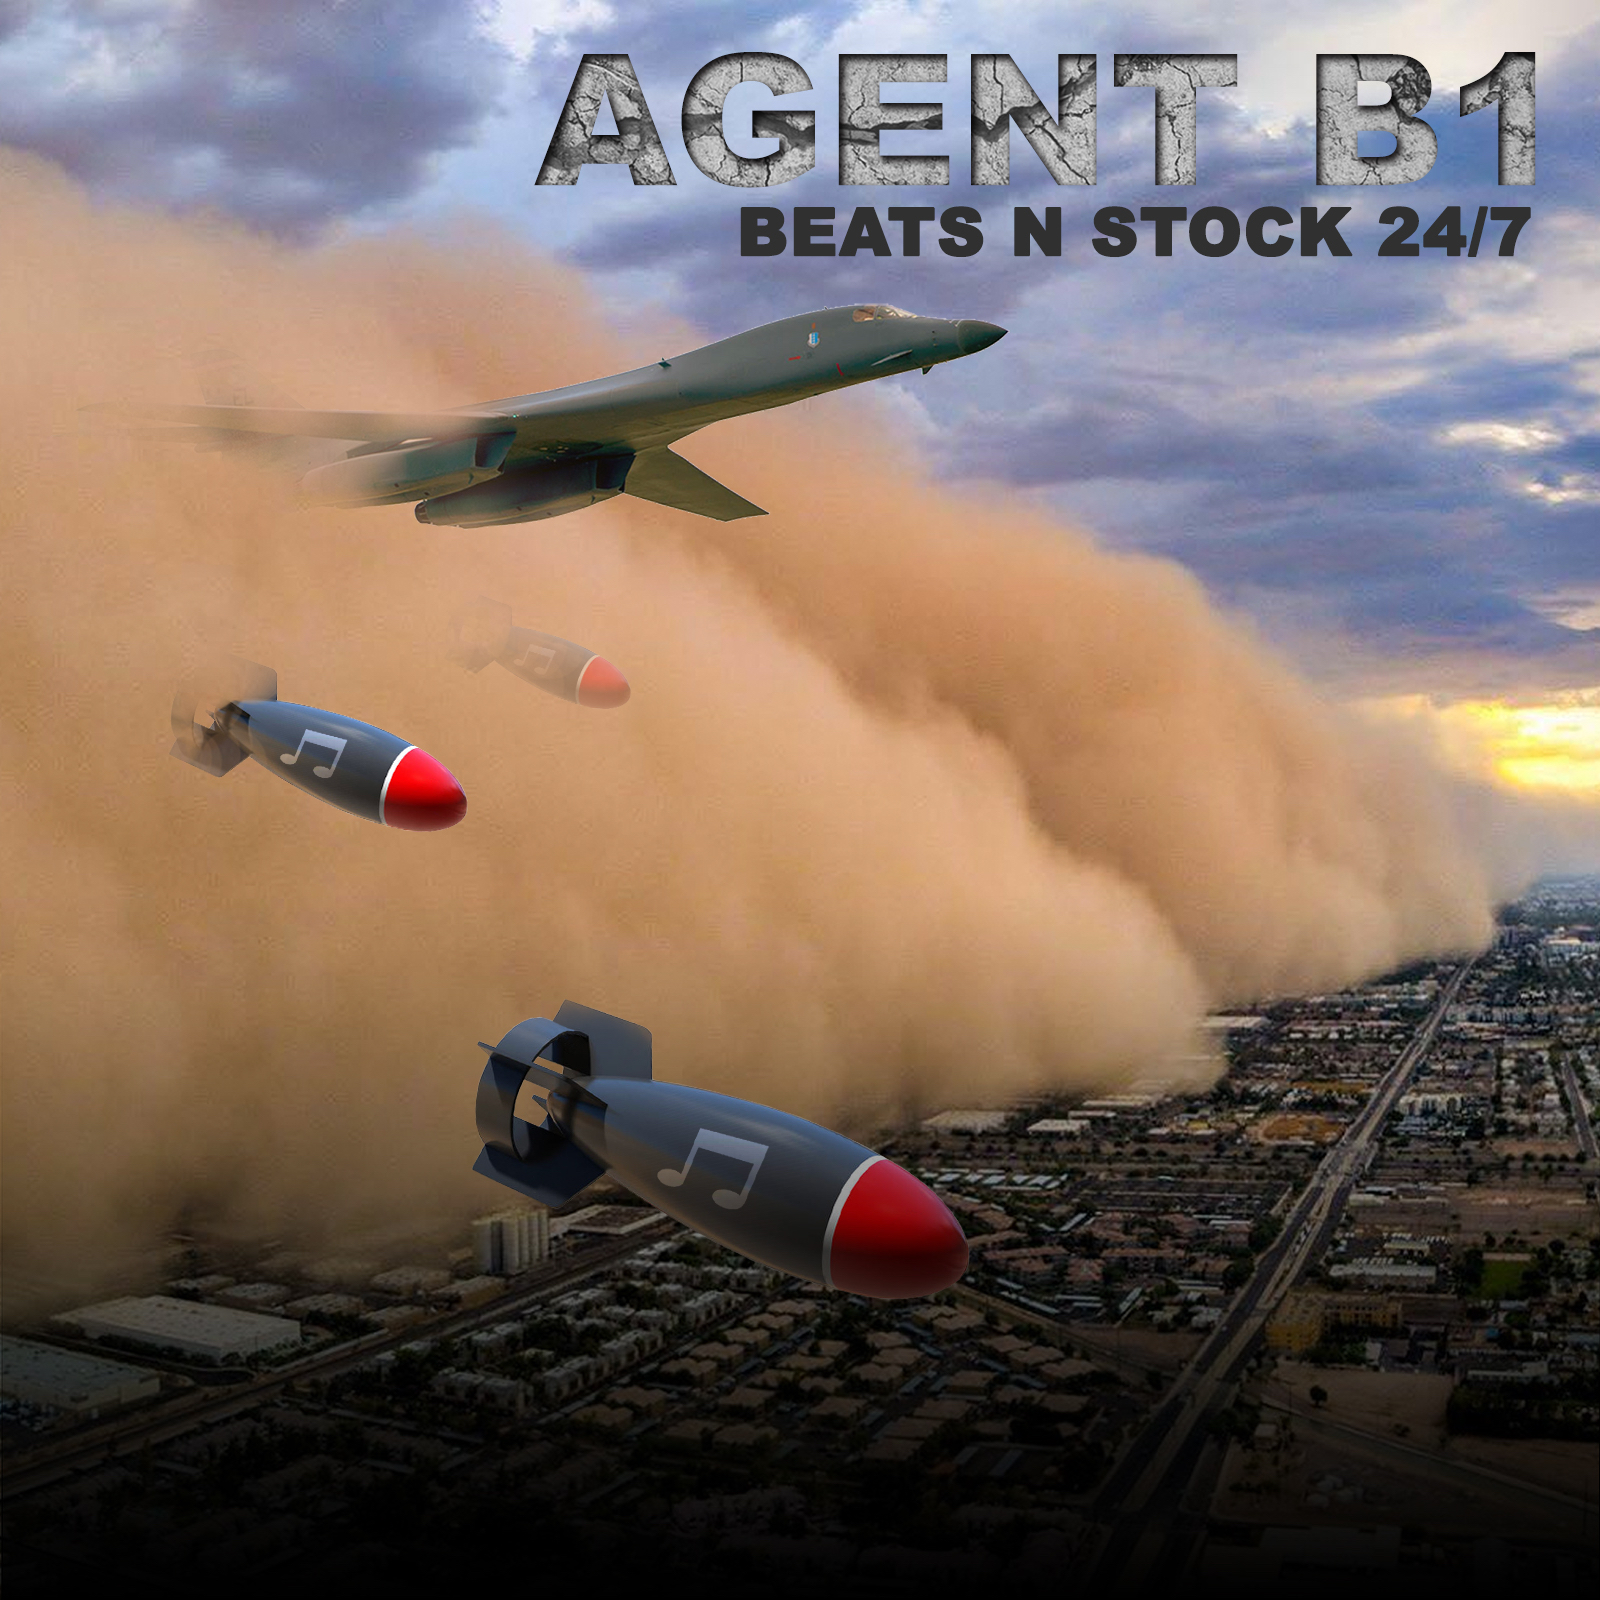 Presenting Agent B1, the New Wave Music Producer